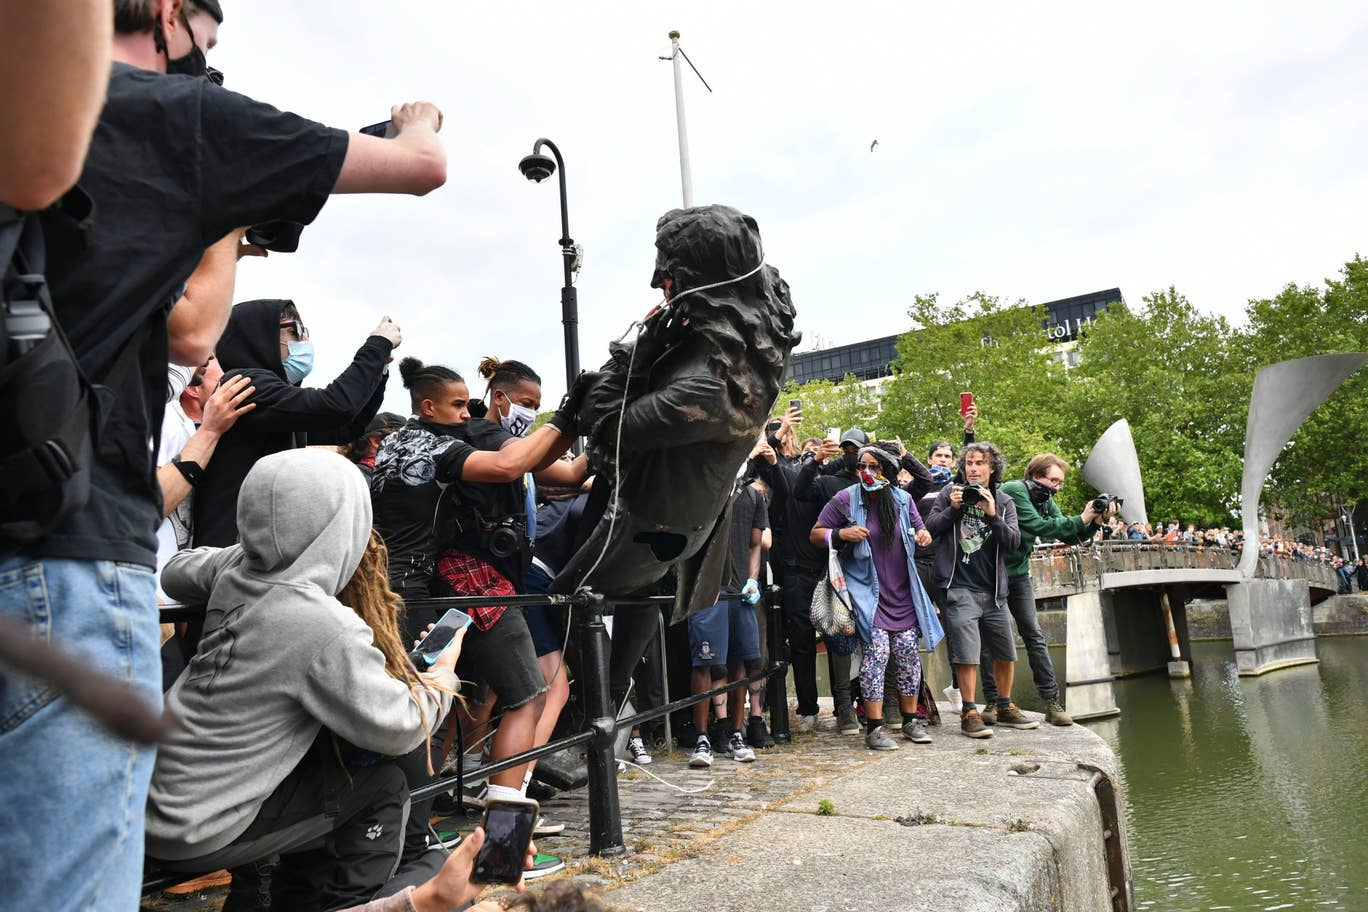 bristol black lives matter protesters throw slave trader statue into harbor after pulling it down